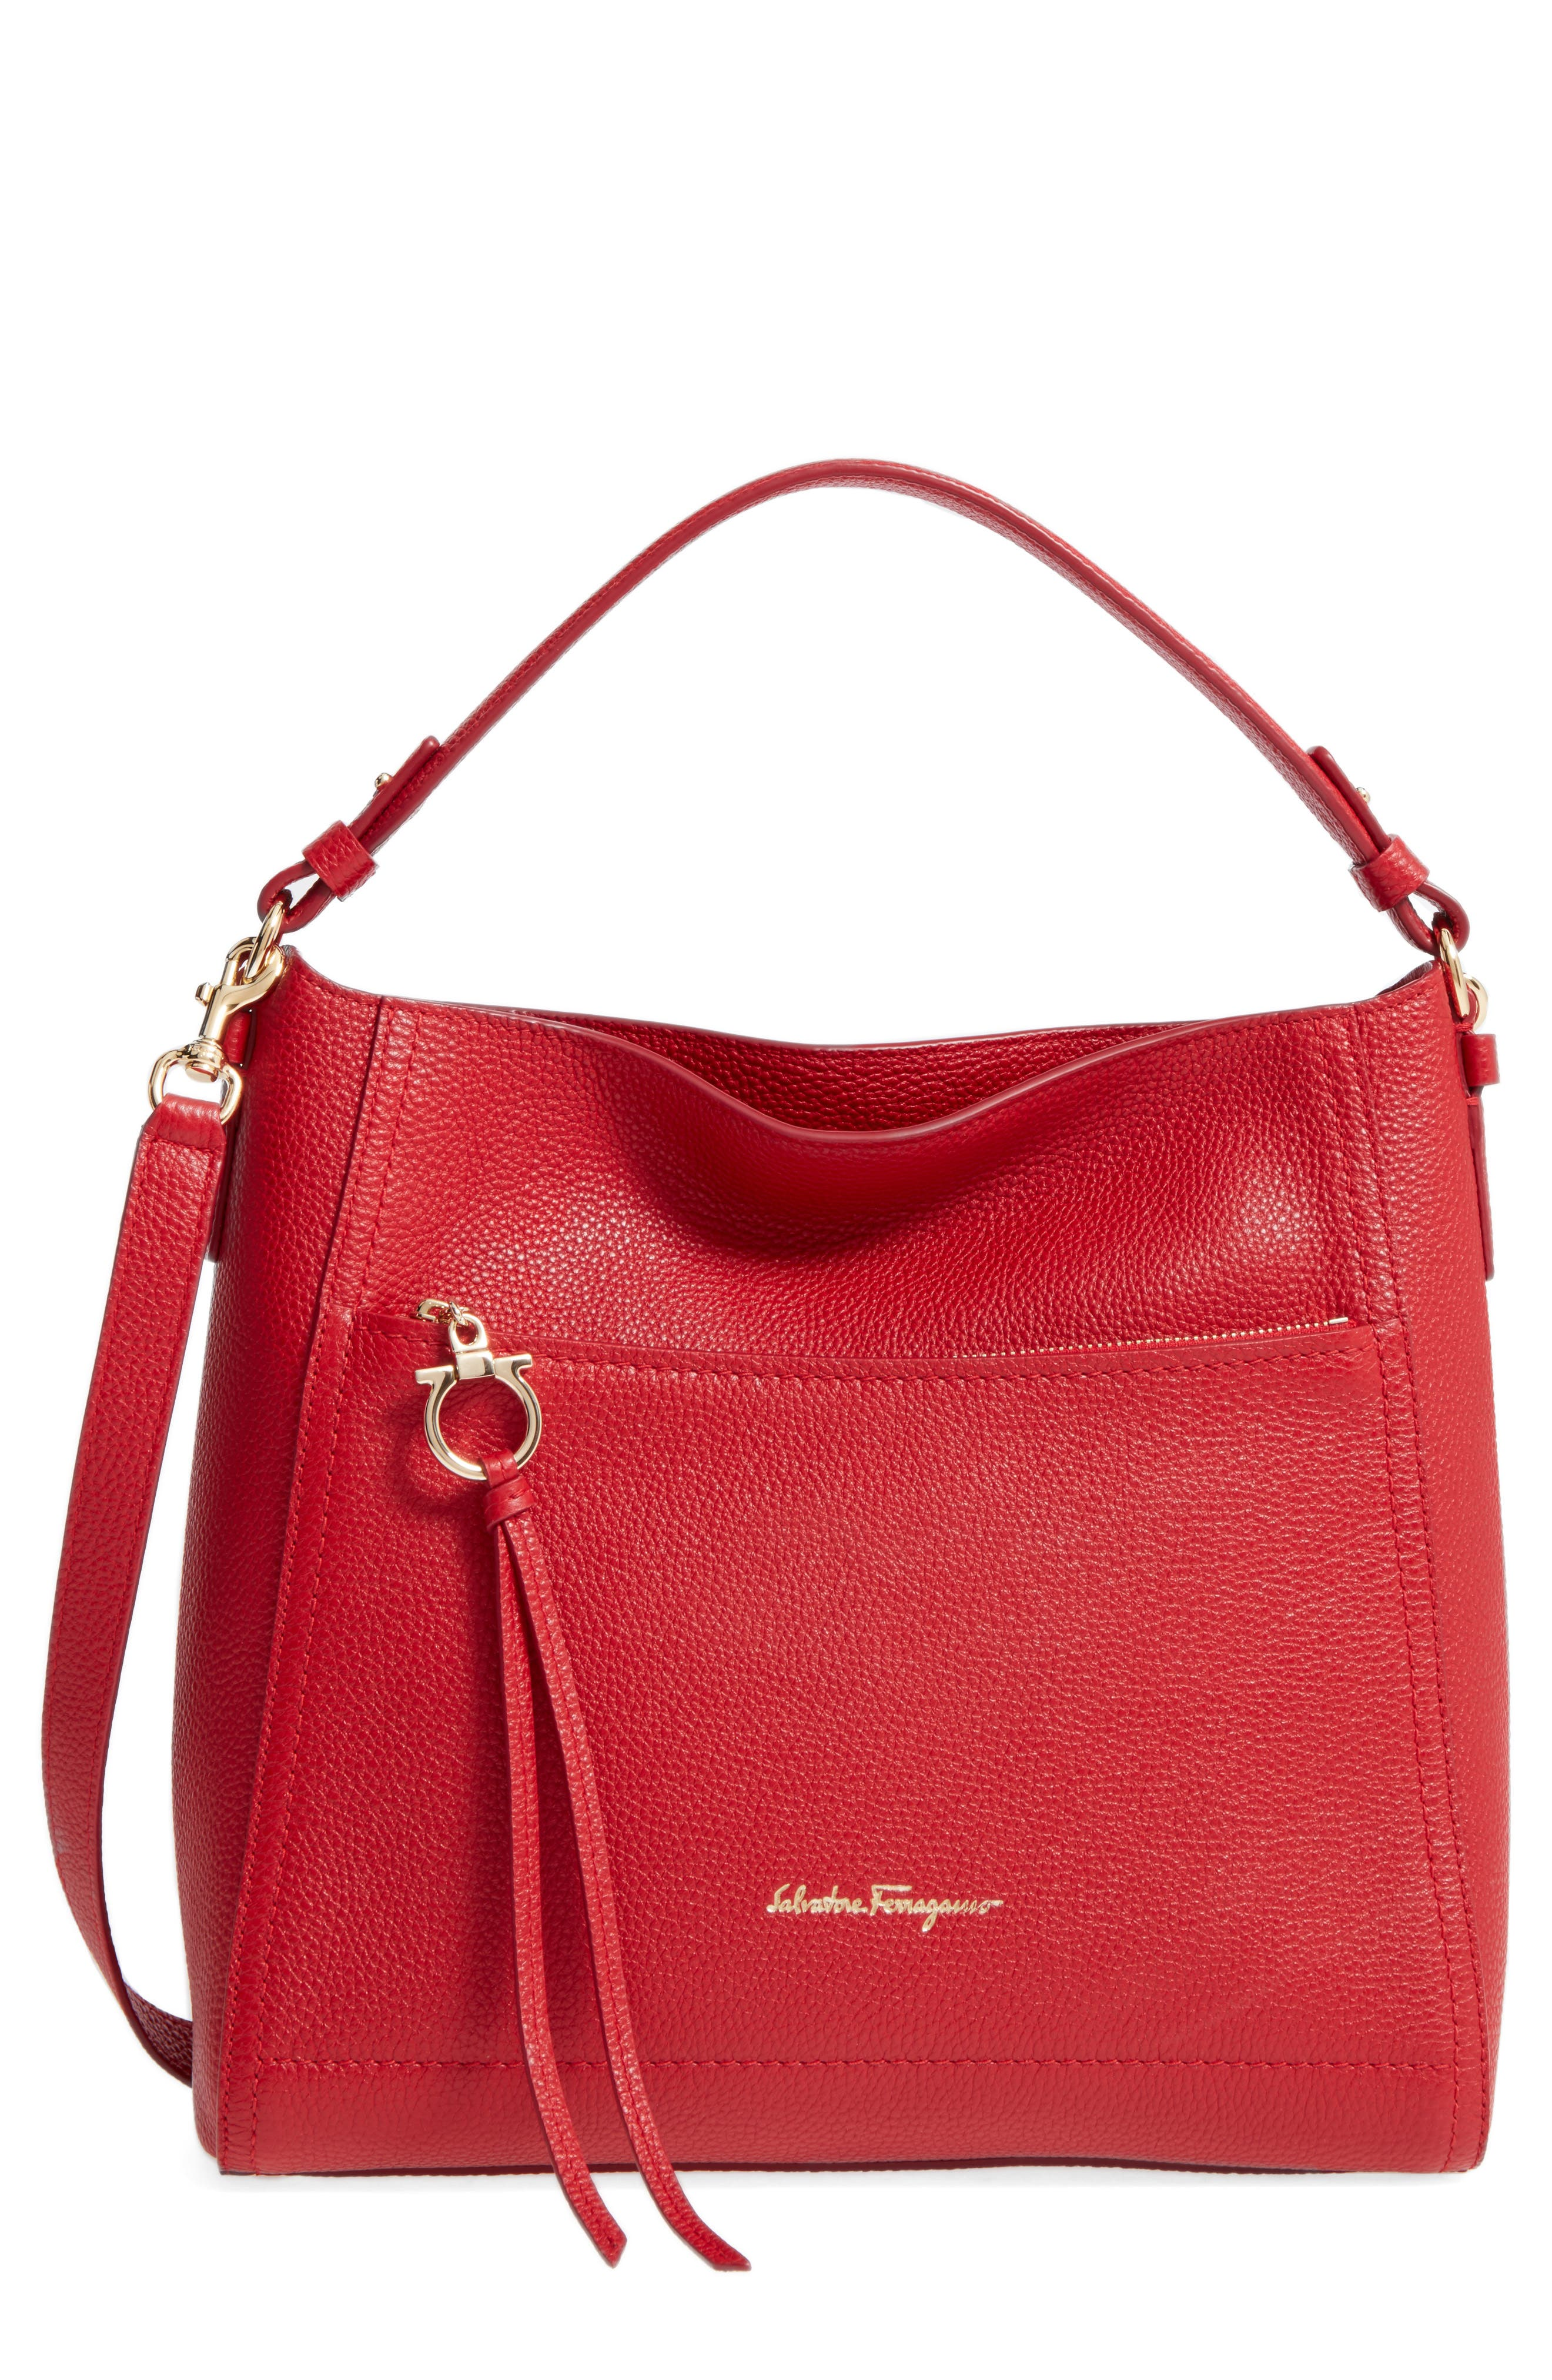 Salvatore Ferragamo Small Pebbled Leather Hobo